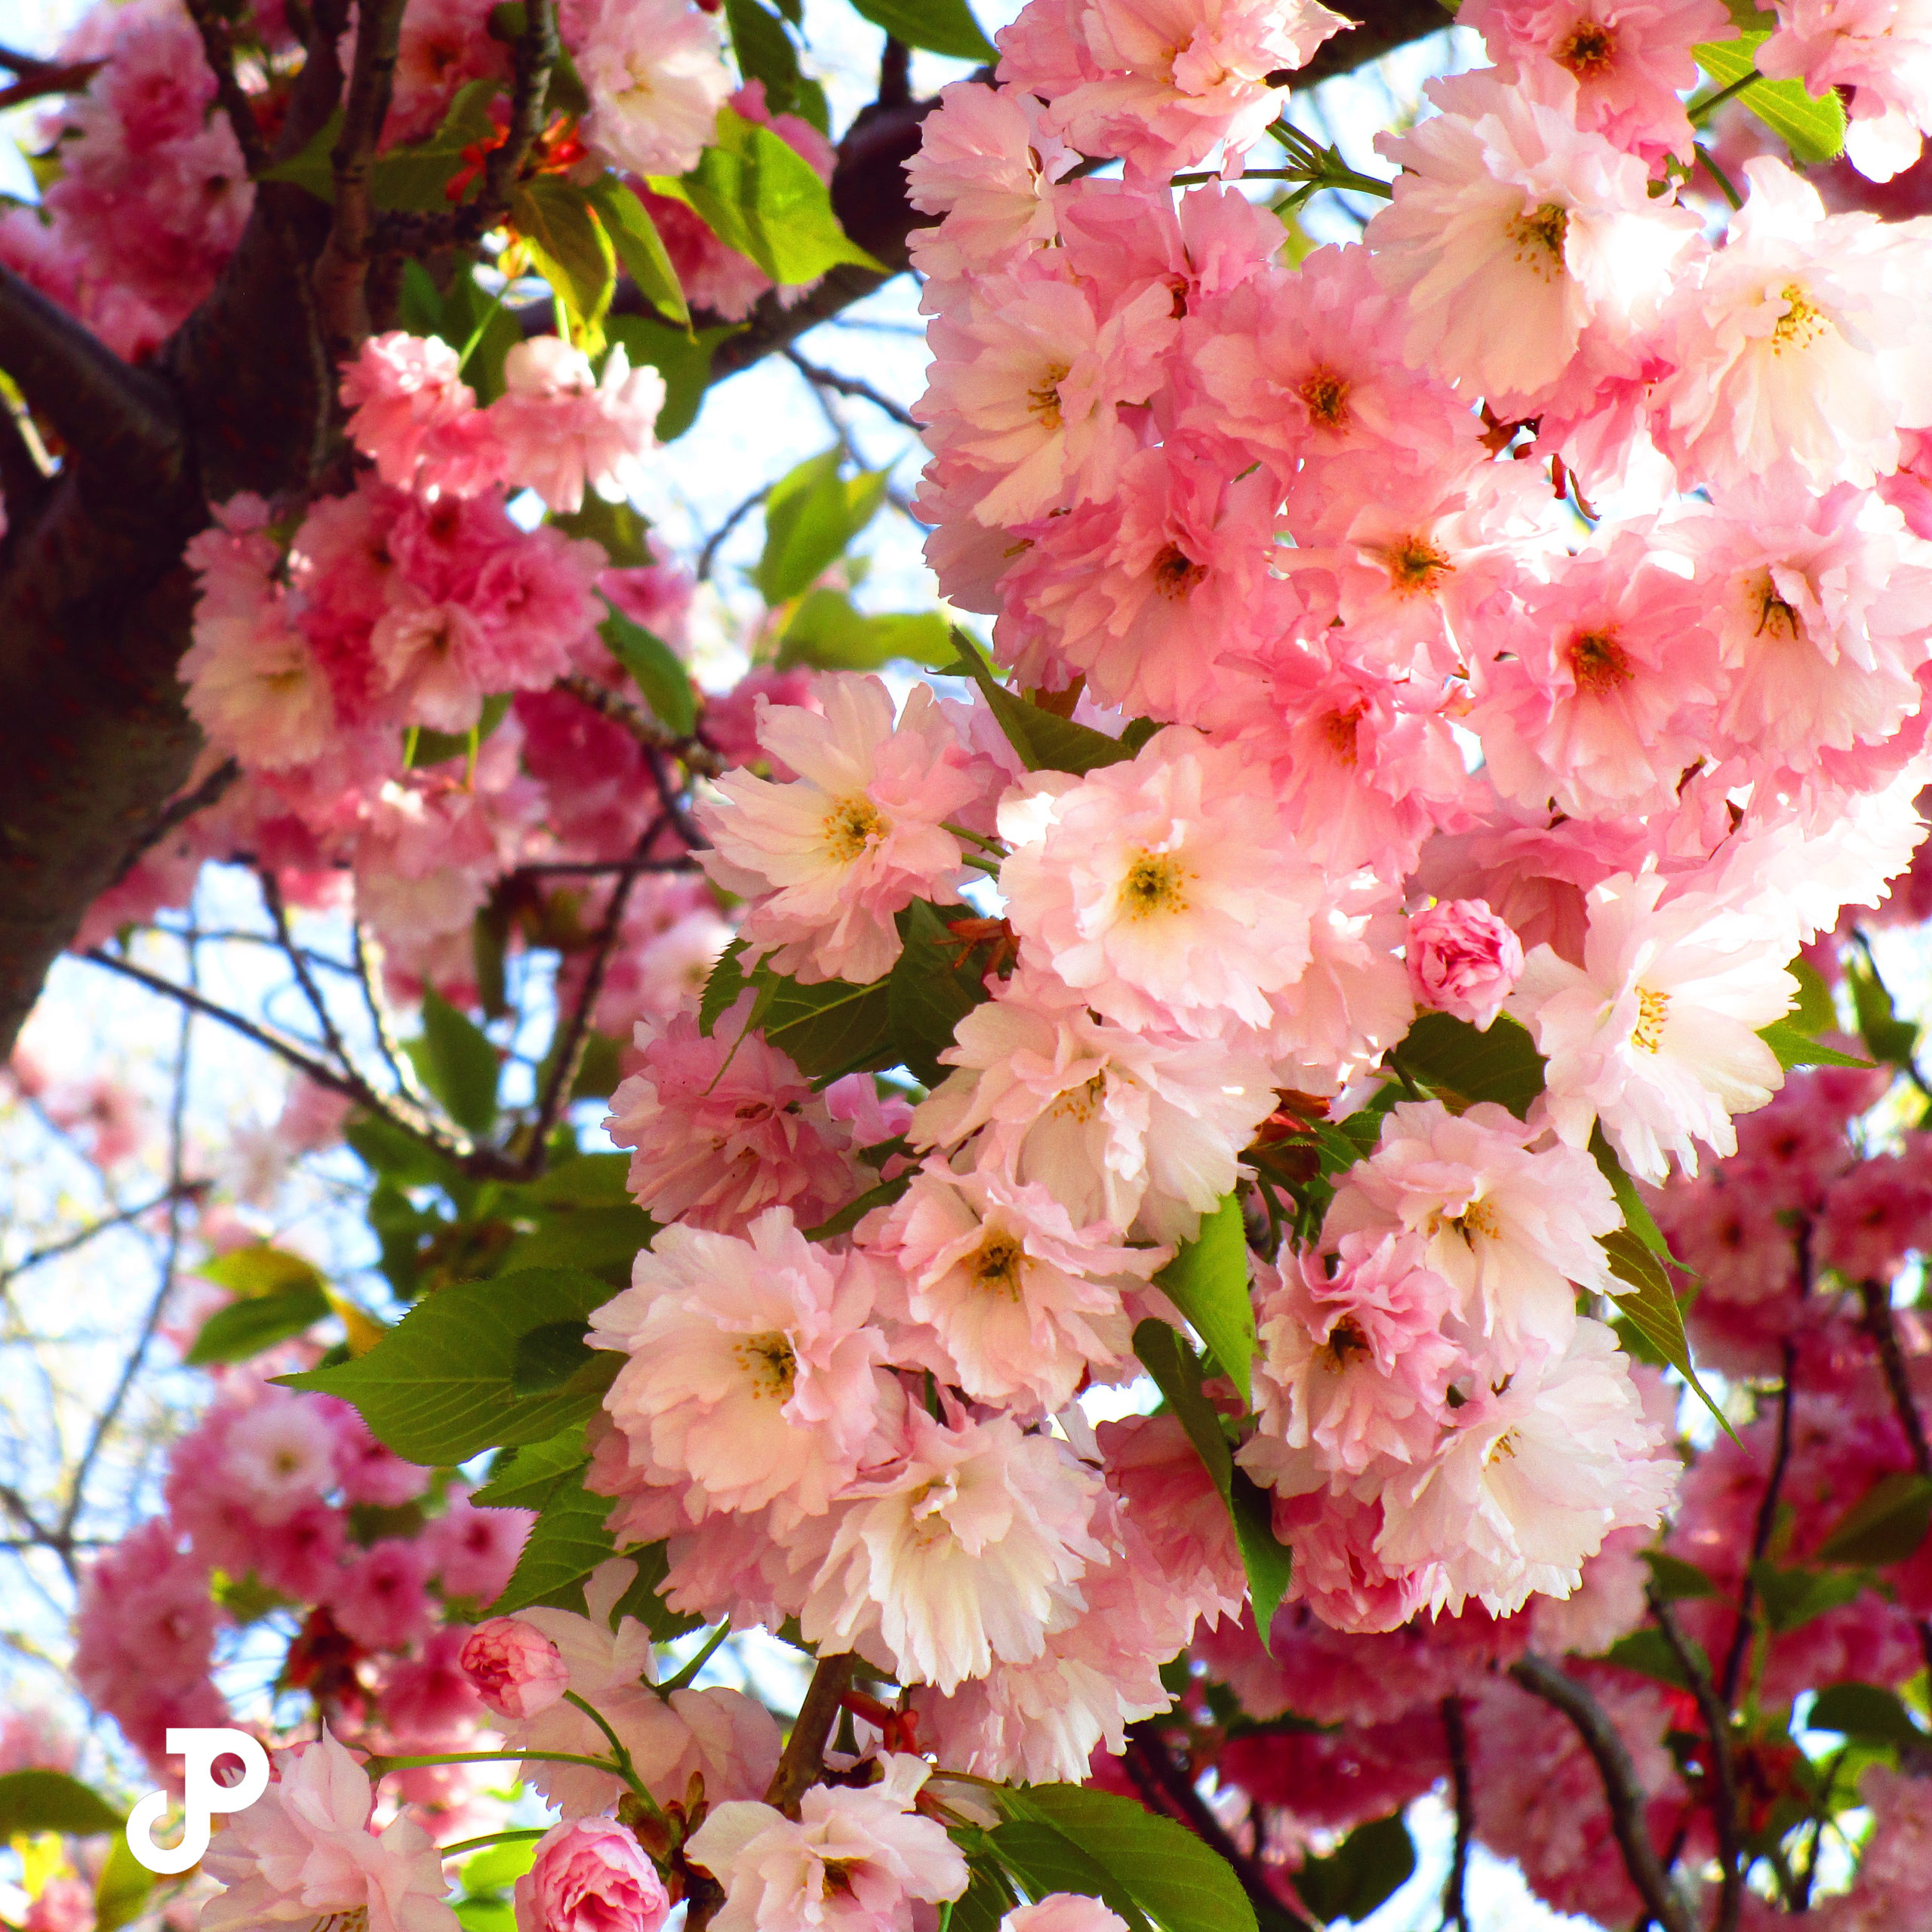 a tree branch covered in pink cherry blossoms